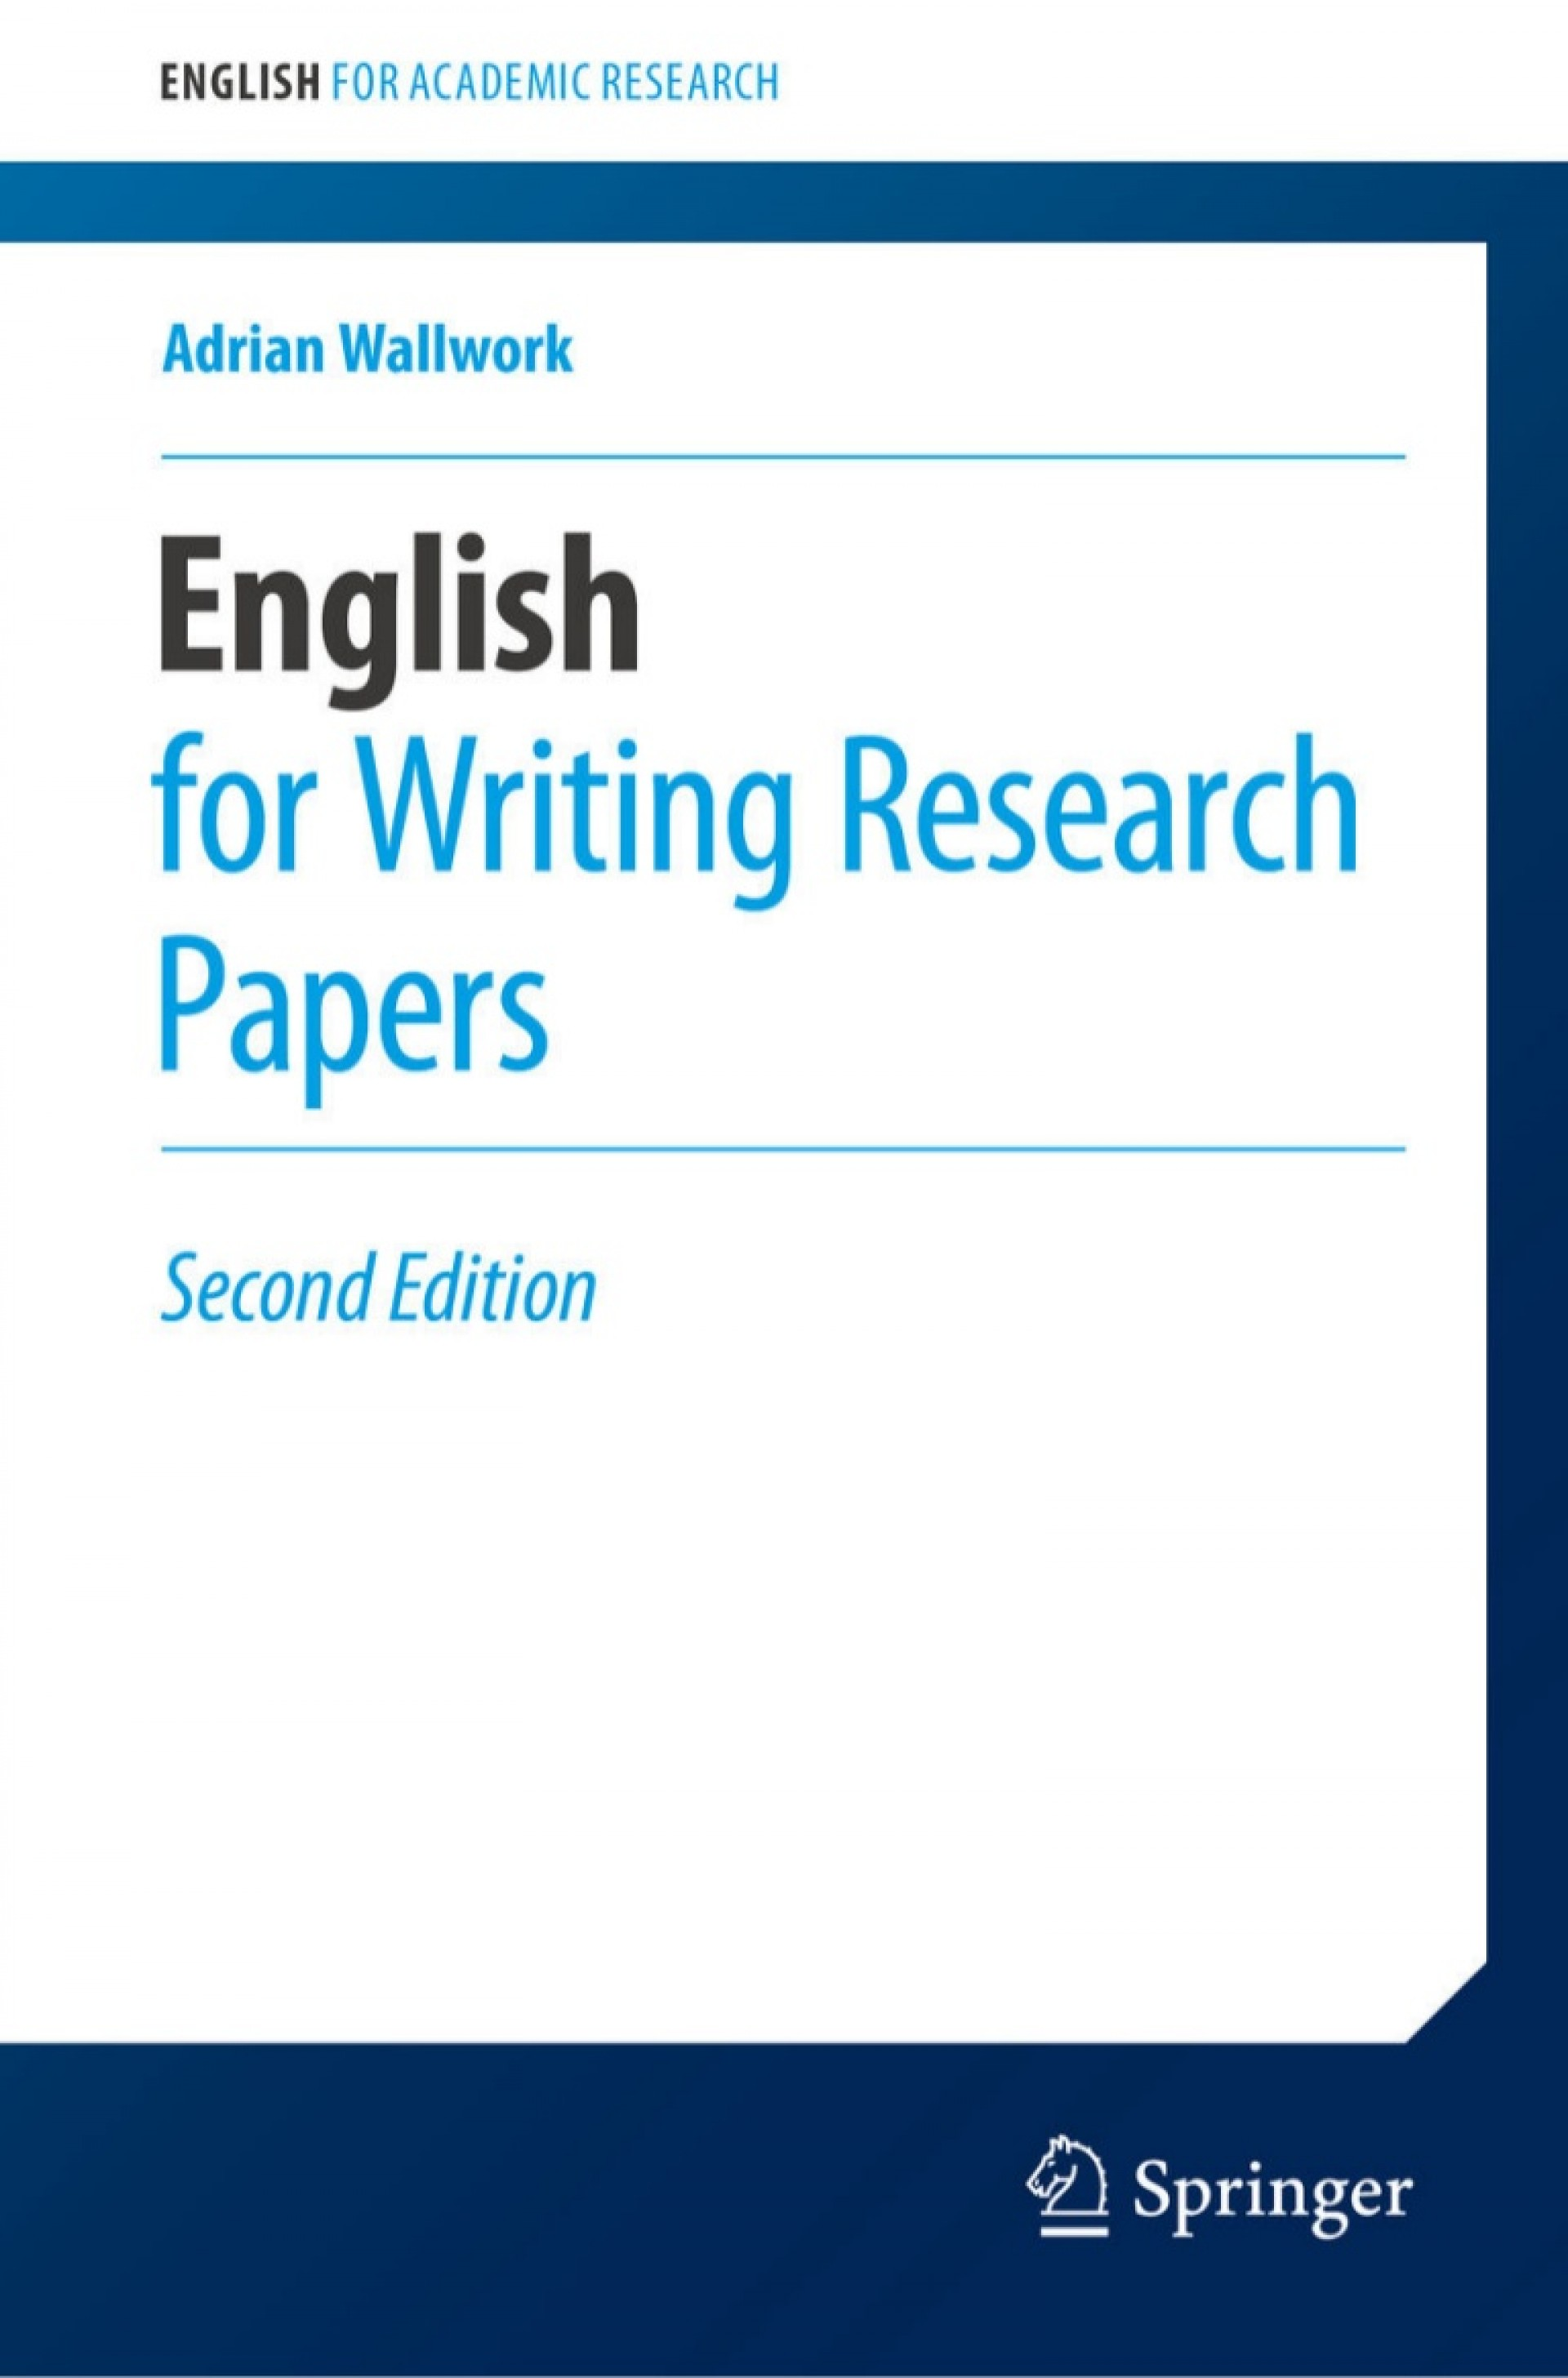 004 English For Writing Research Papers Adrian Wallwork Pdf Paper Englishforwritingresearchpapersbyadrianwallwork Thumbnail Marvelous 2011 1920